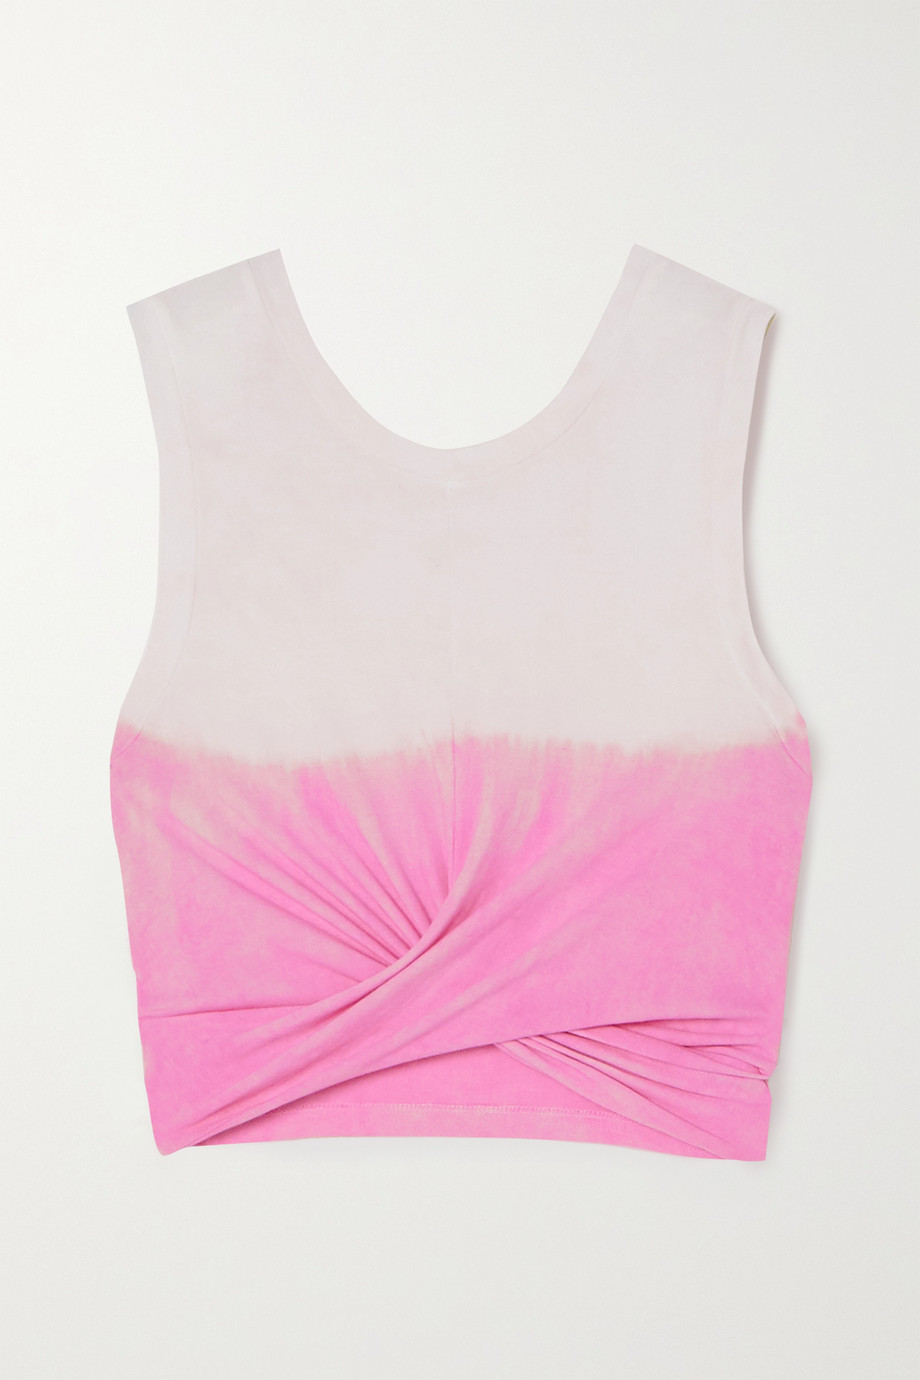 Year of Ours Anne Marie cropped knotted tie-dyed cotton-jersey tank top